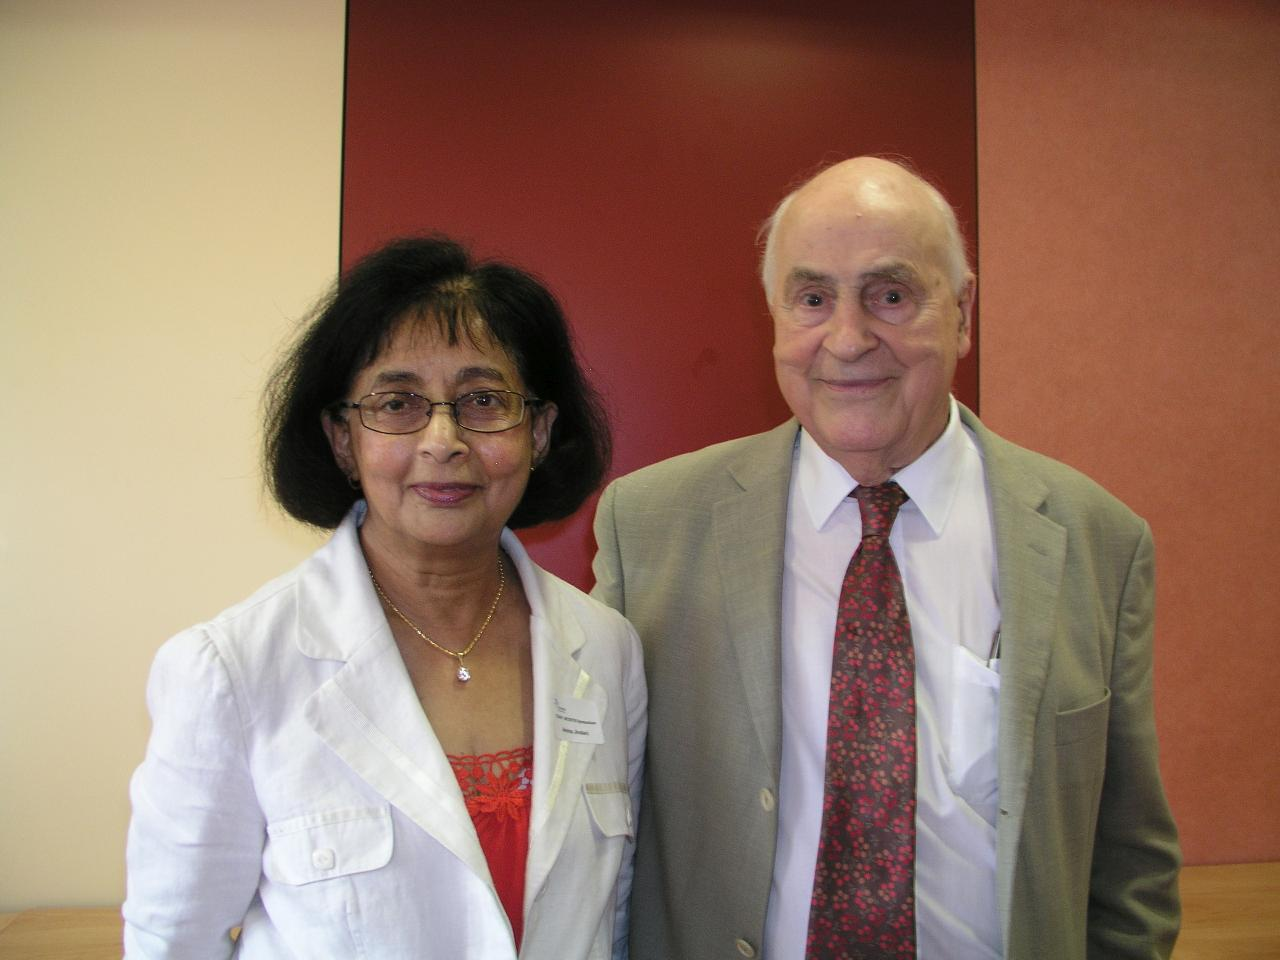 With Professor Denny Mitchison at a Symposium given in honour of his 90th birthday, at St. George's, University of London, Tooting, in September, 2009.